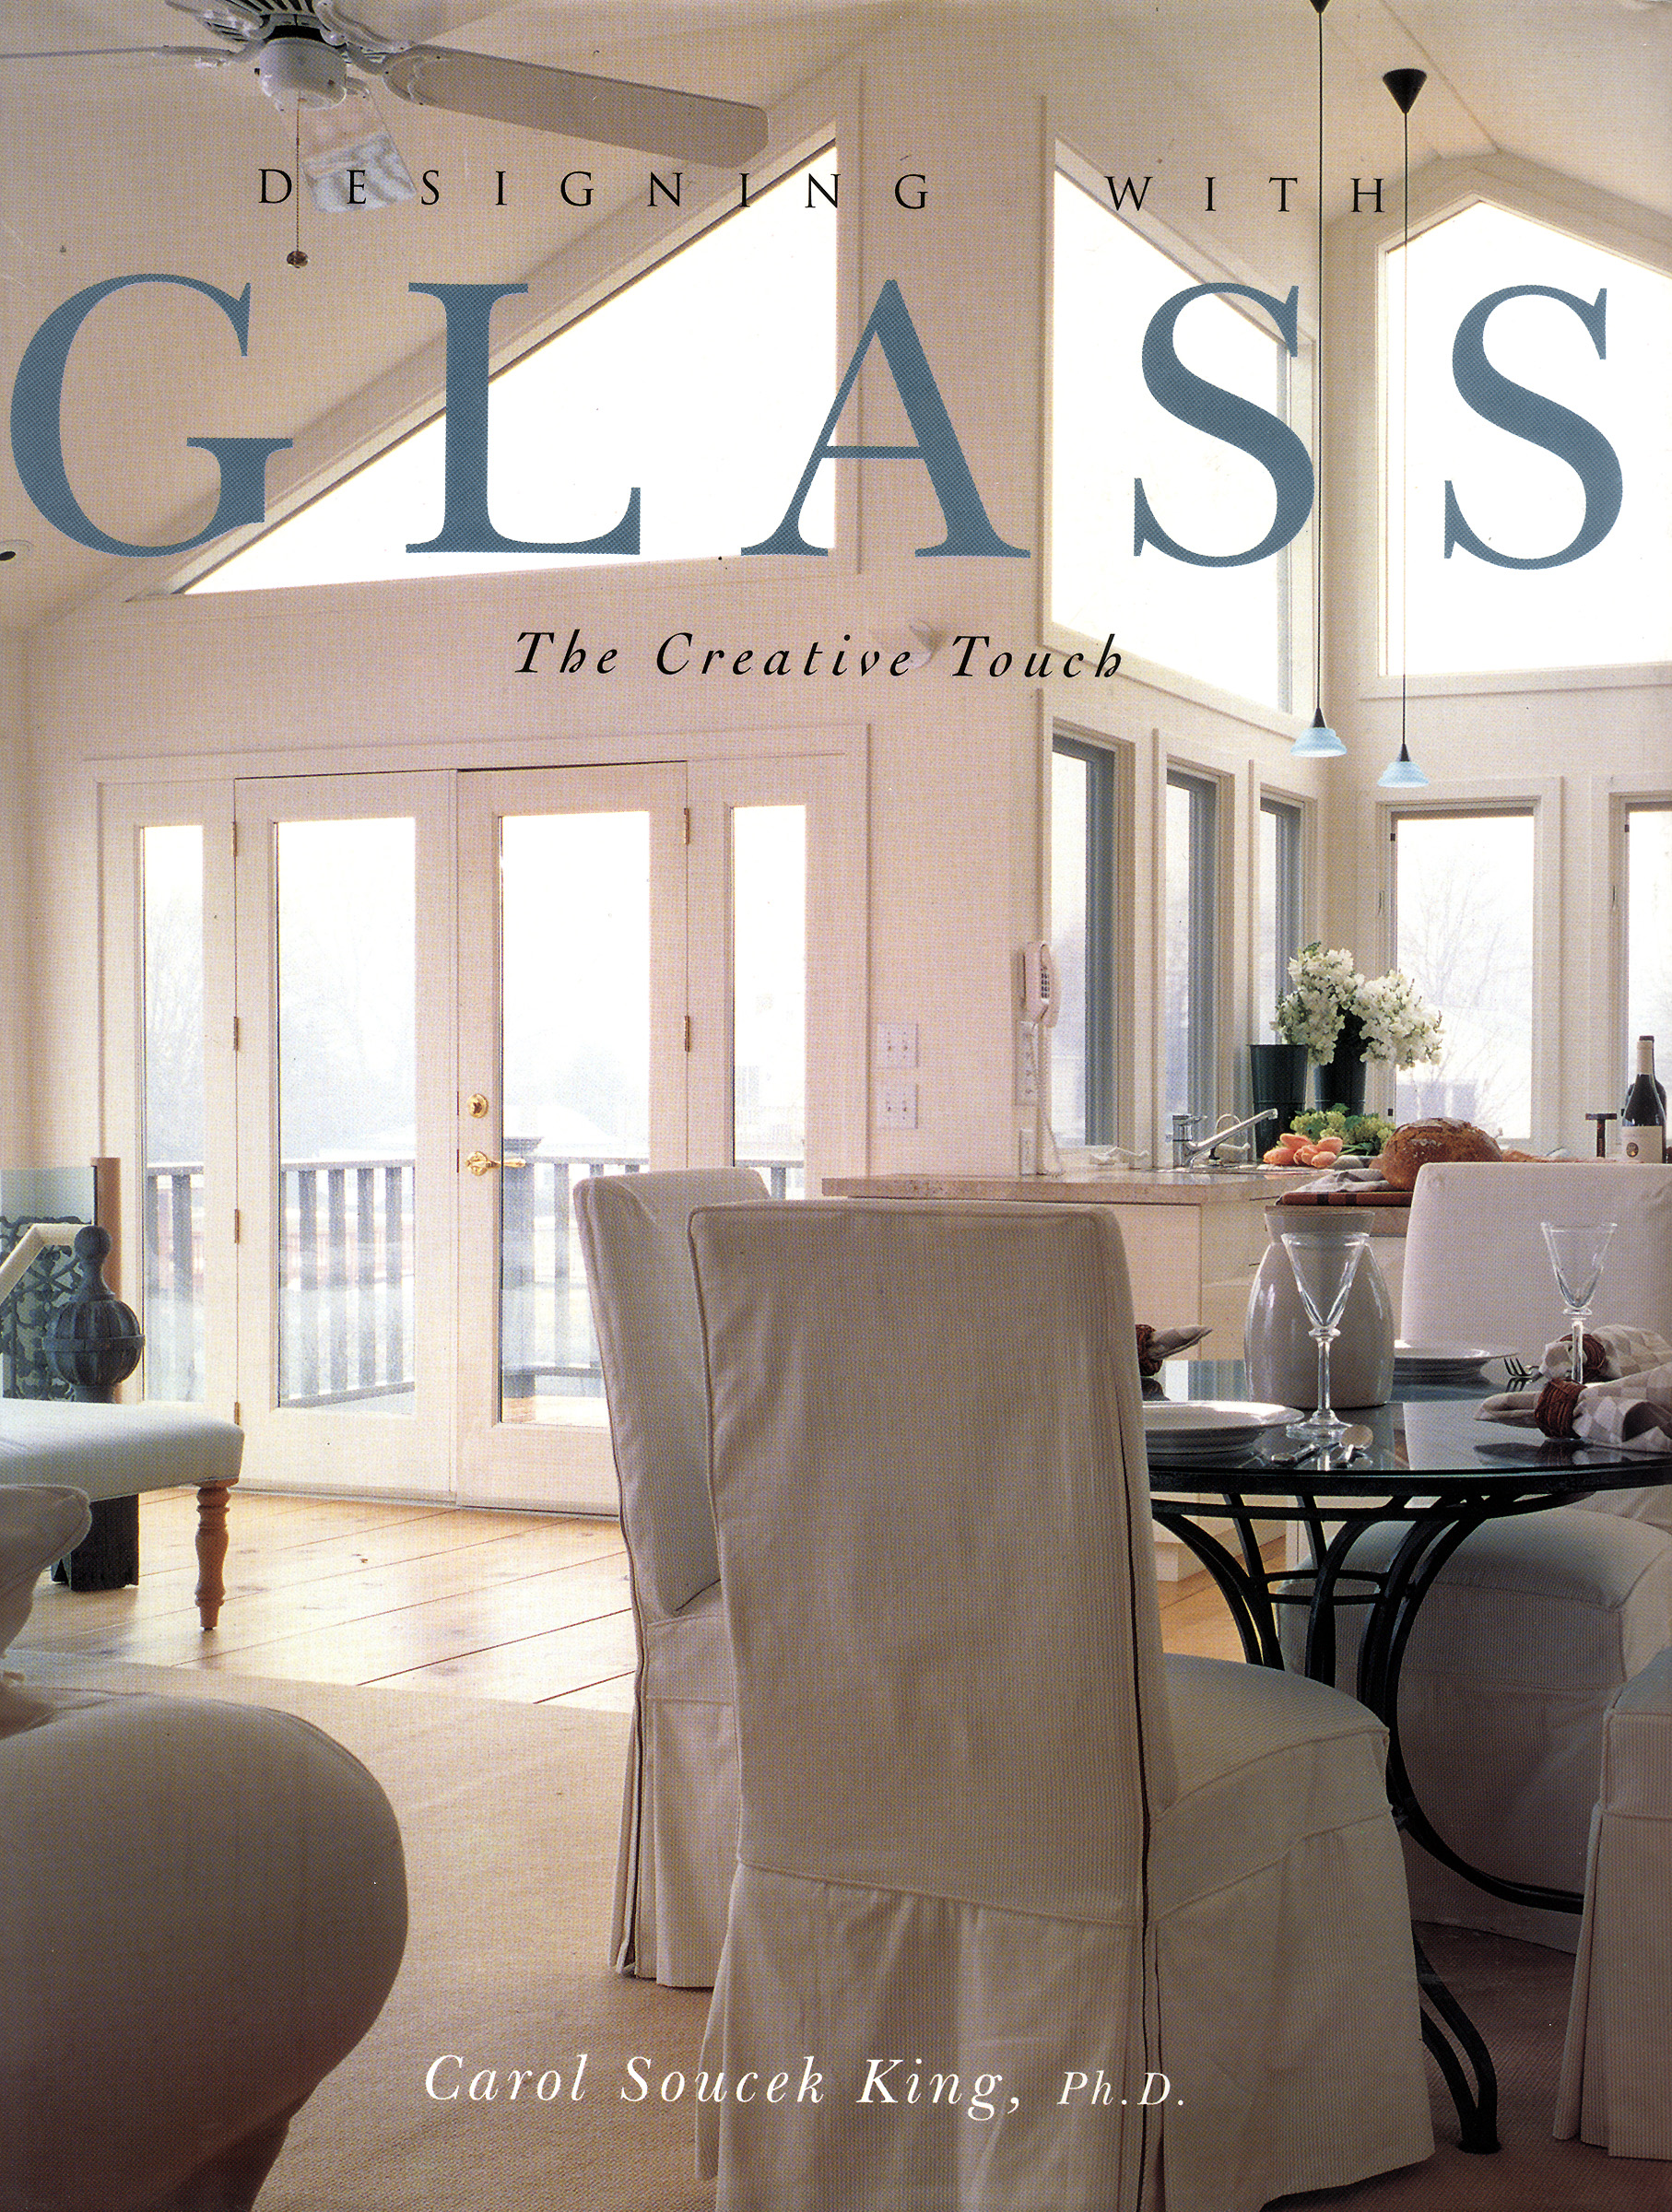 Designing with Glass